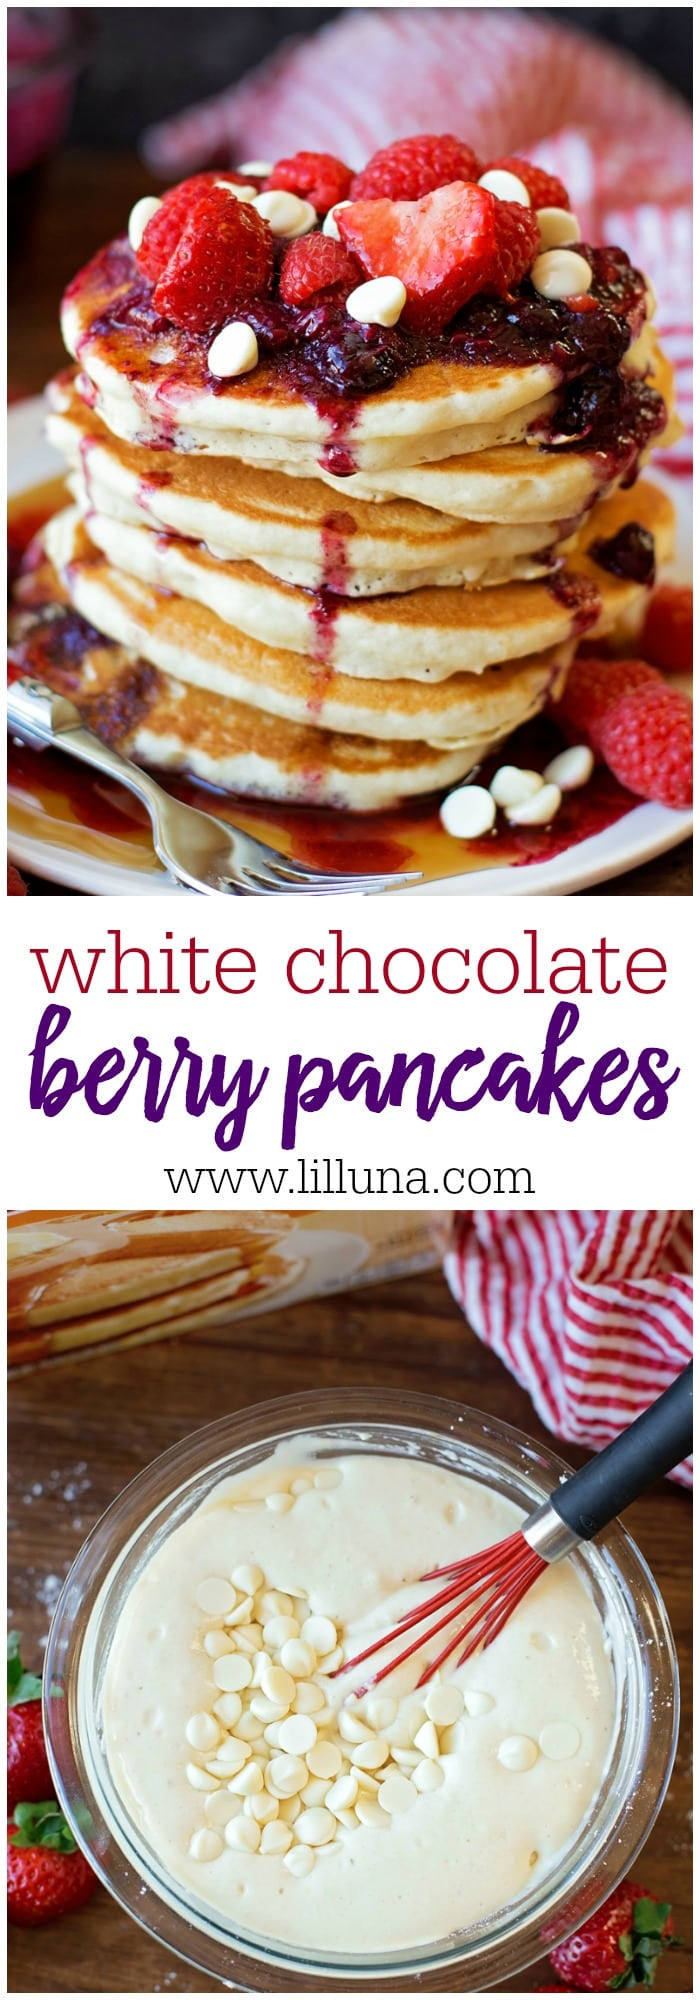 White Chocolate Berry Pancakes with homemade berry syrup and fresh berries and white chocolate on top. They're AMAZING!